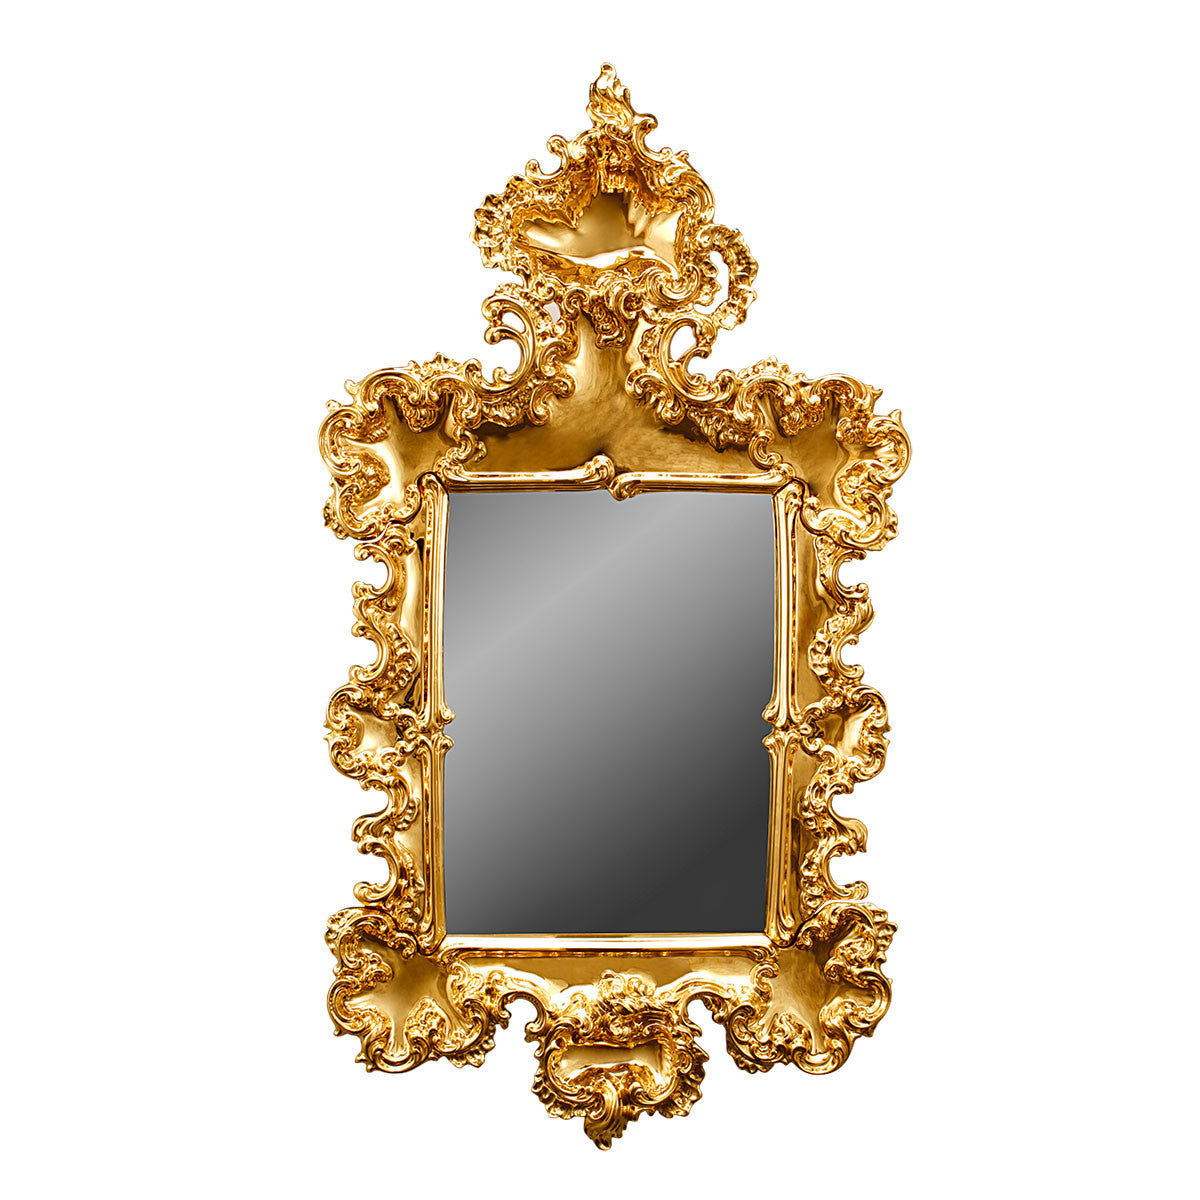 Ceramic large carved mirror with gold finish